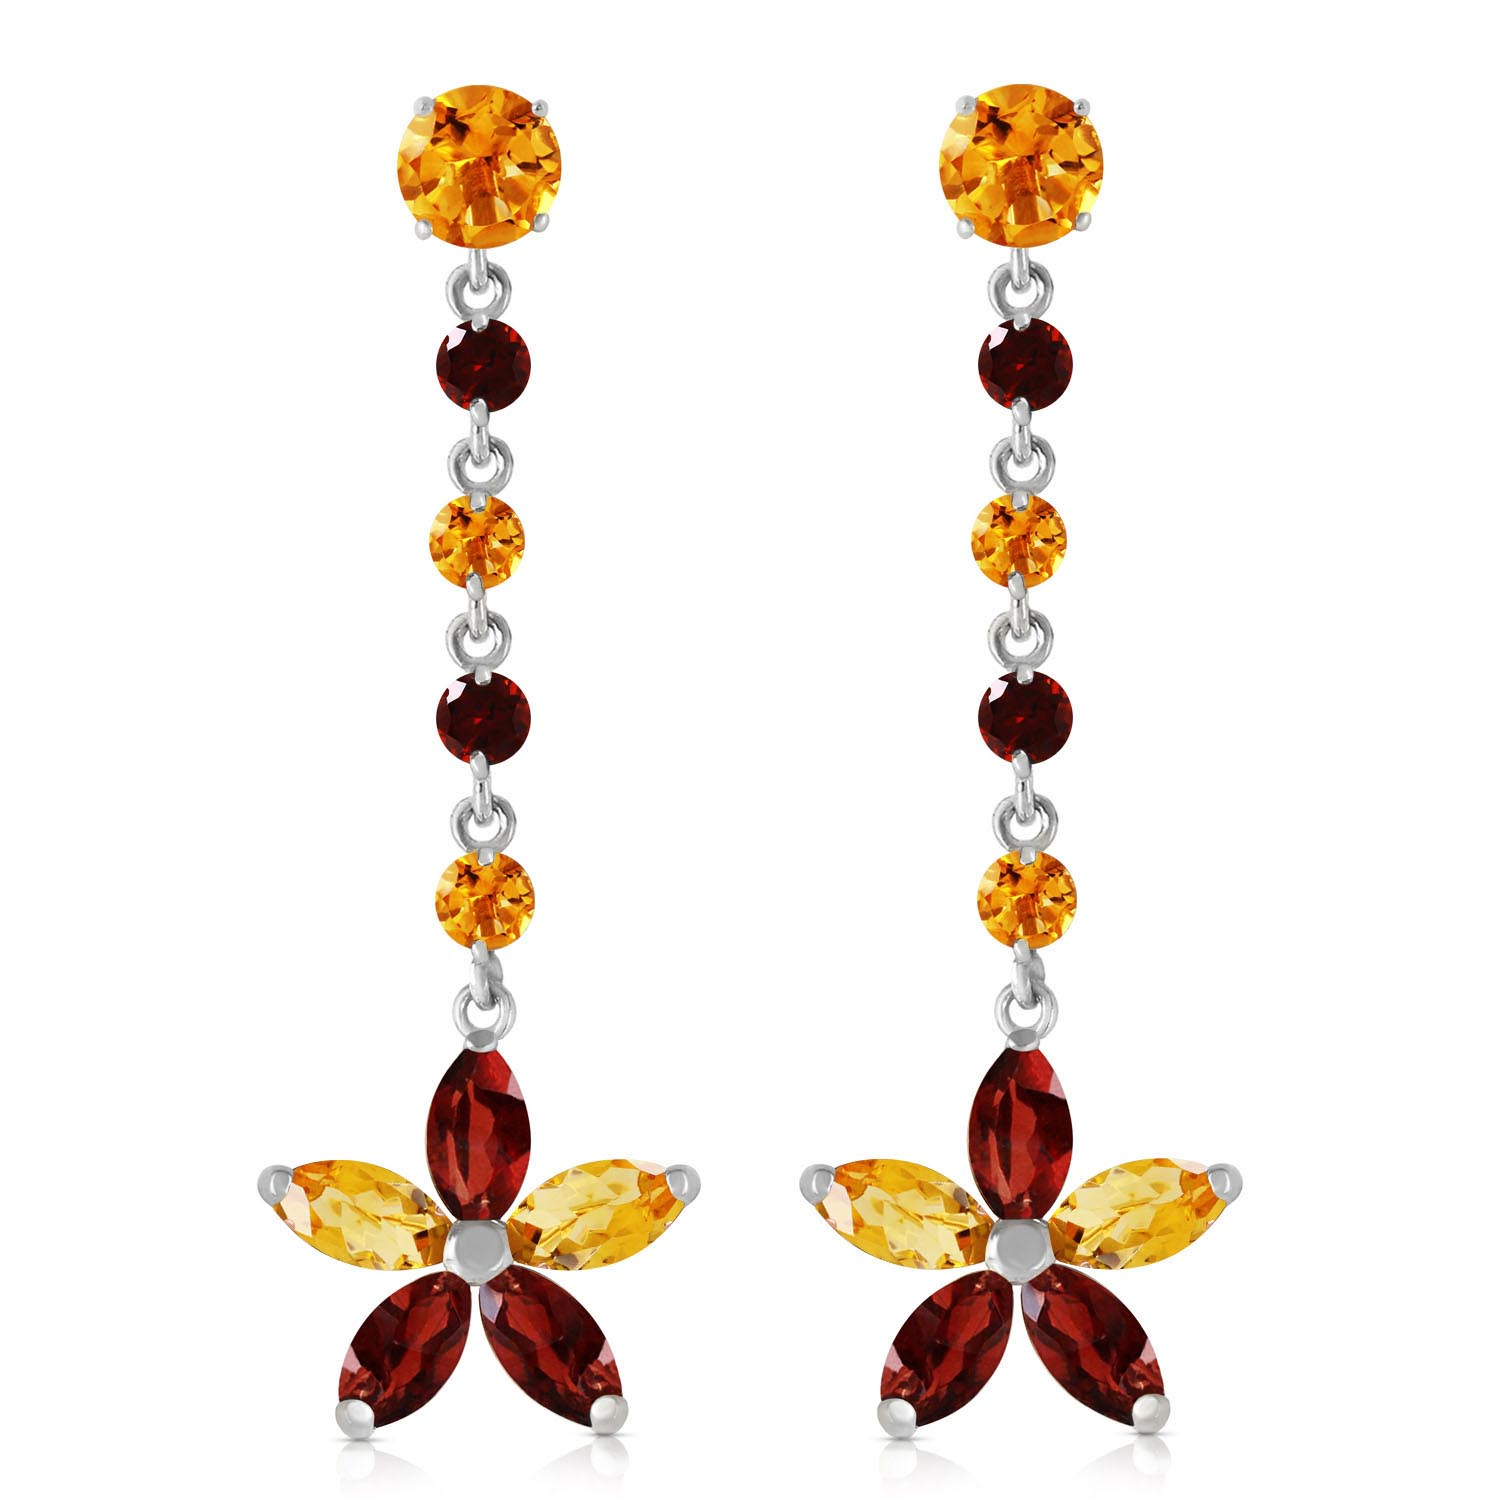 Citrine and Garnet Daisy Chain Drop Earrings 4.8ctw in 9ct White Gold